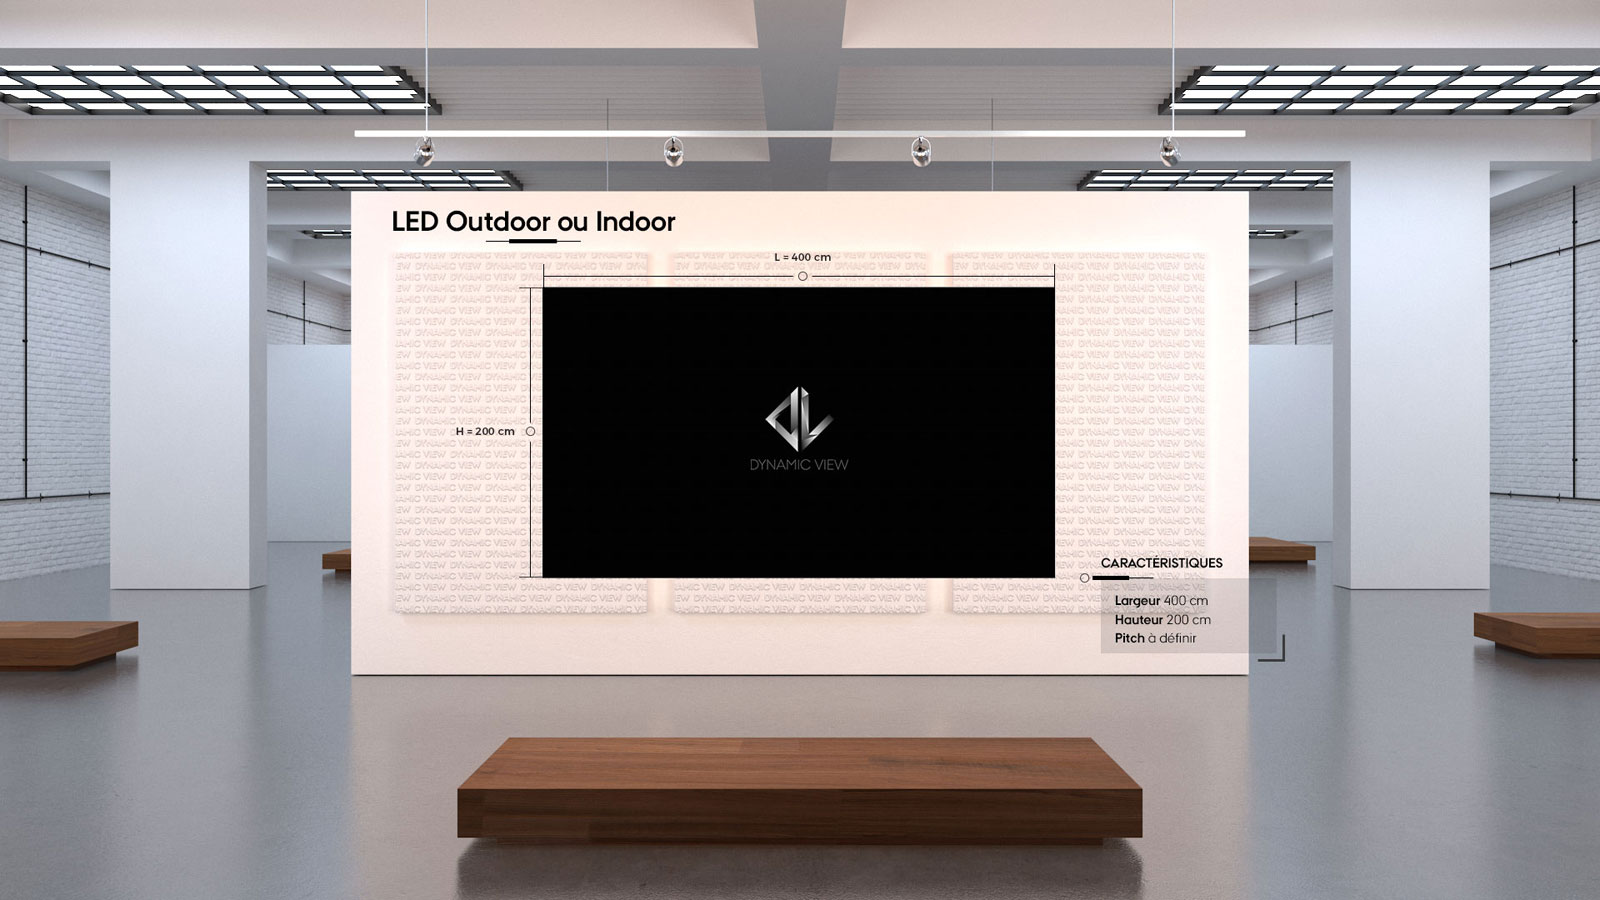 45 LED Outdoor ou Indoor